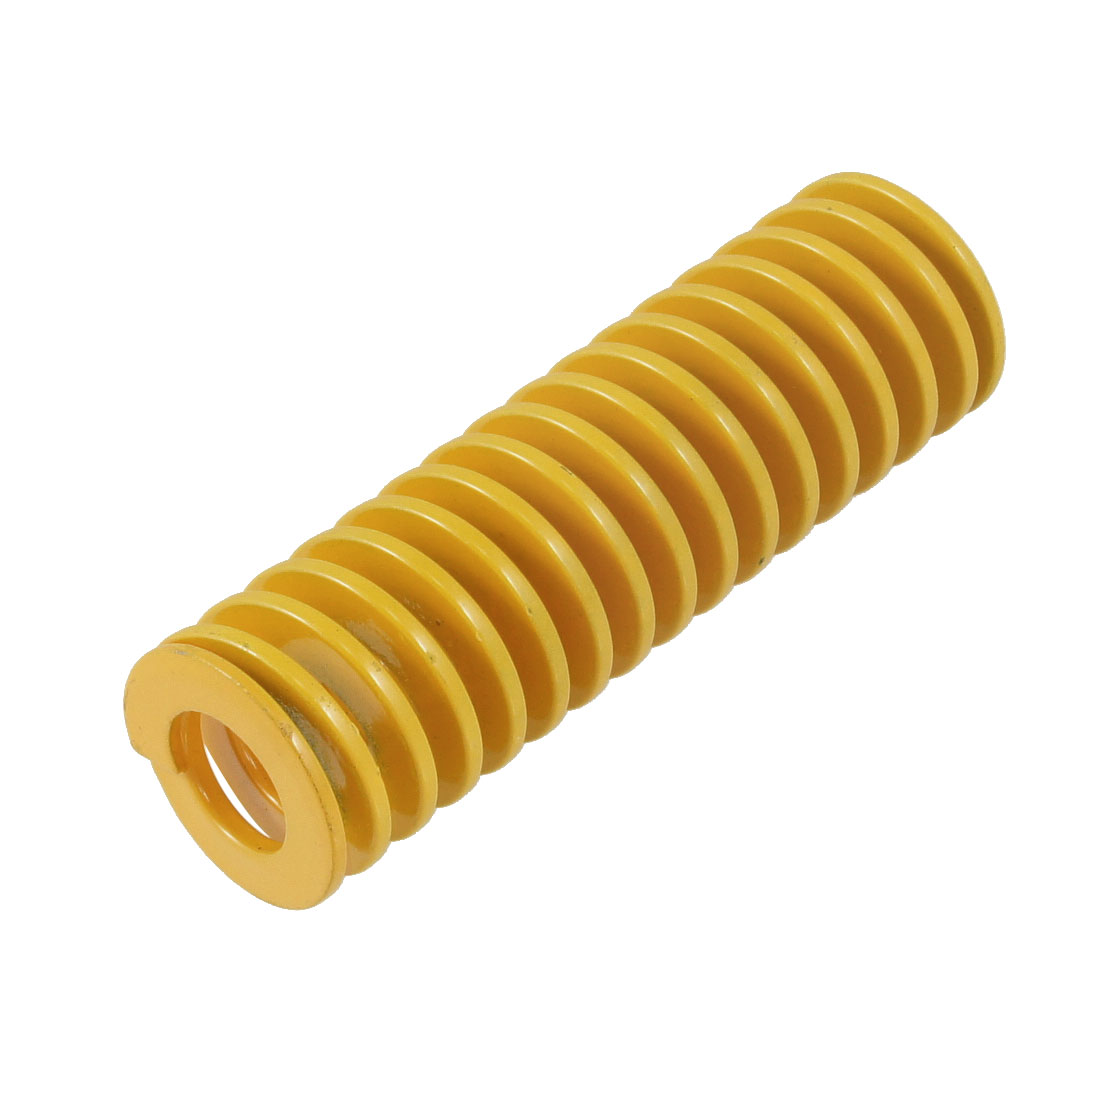 30mm x 16.5mm x 100mm Rectangular Section Mold Mould Die Spring